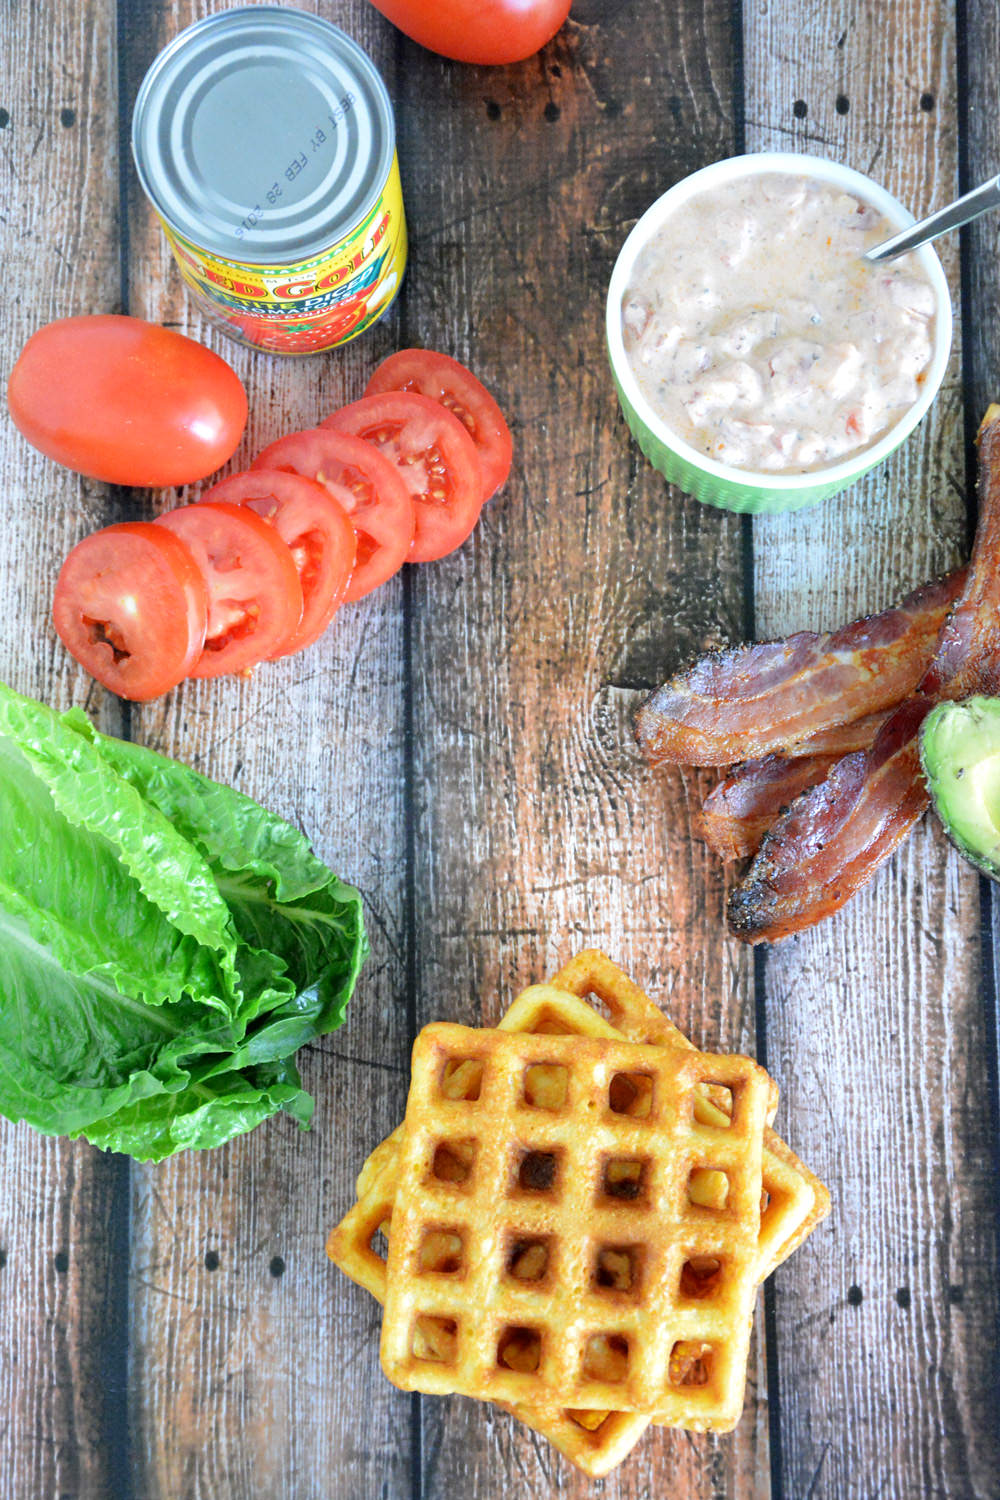 Cornbread Waffle BLT's with Garlic Aioli  are crispy and sweet cornbread waffles, layered with smoky bacon, fresh lettuce, creamy avocado and garlic aioli for a delicious twist on the classic BLT!